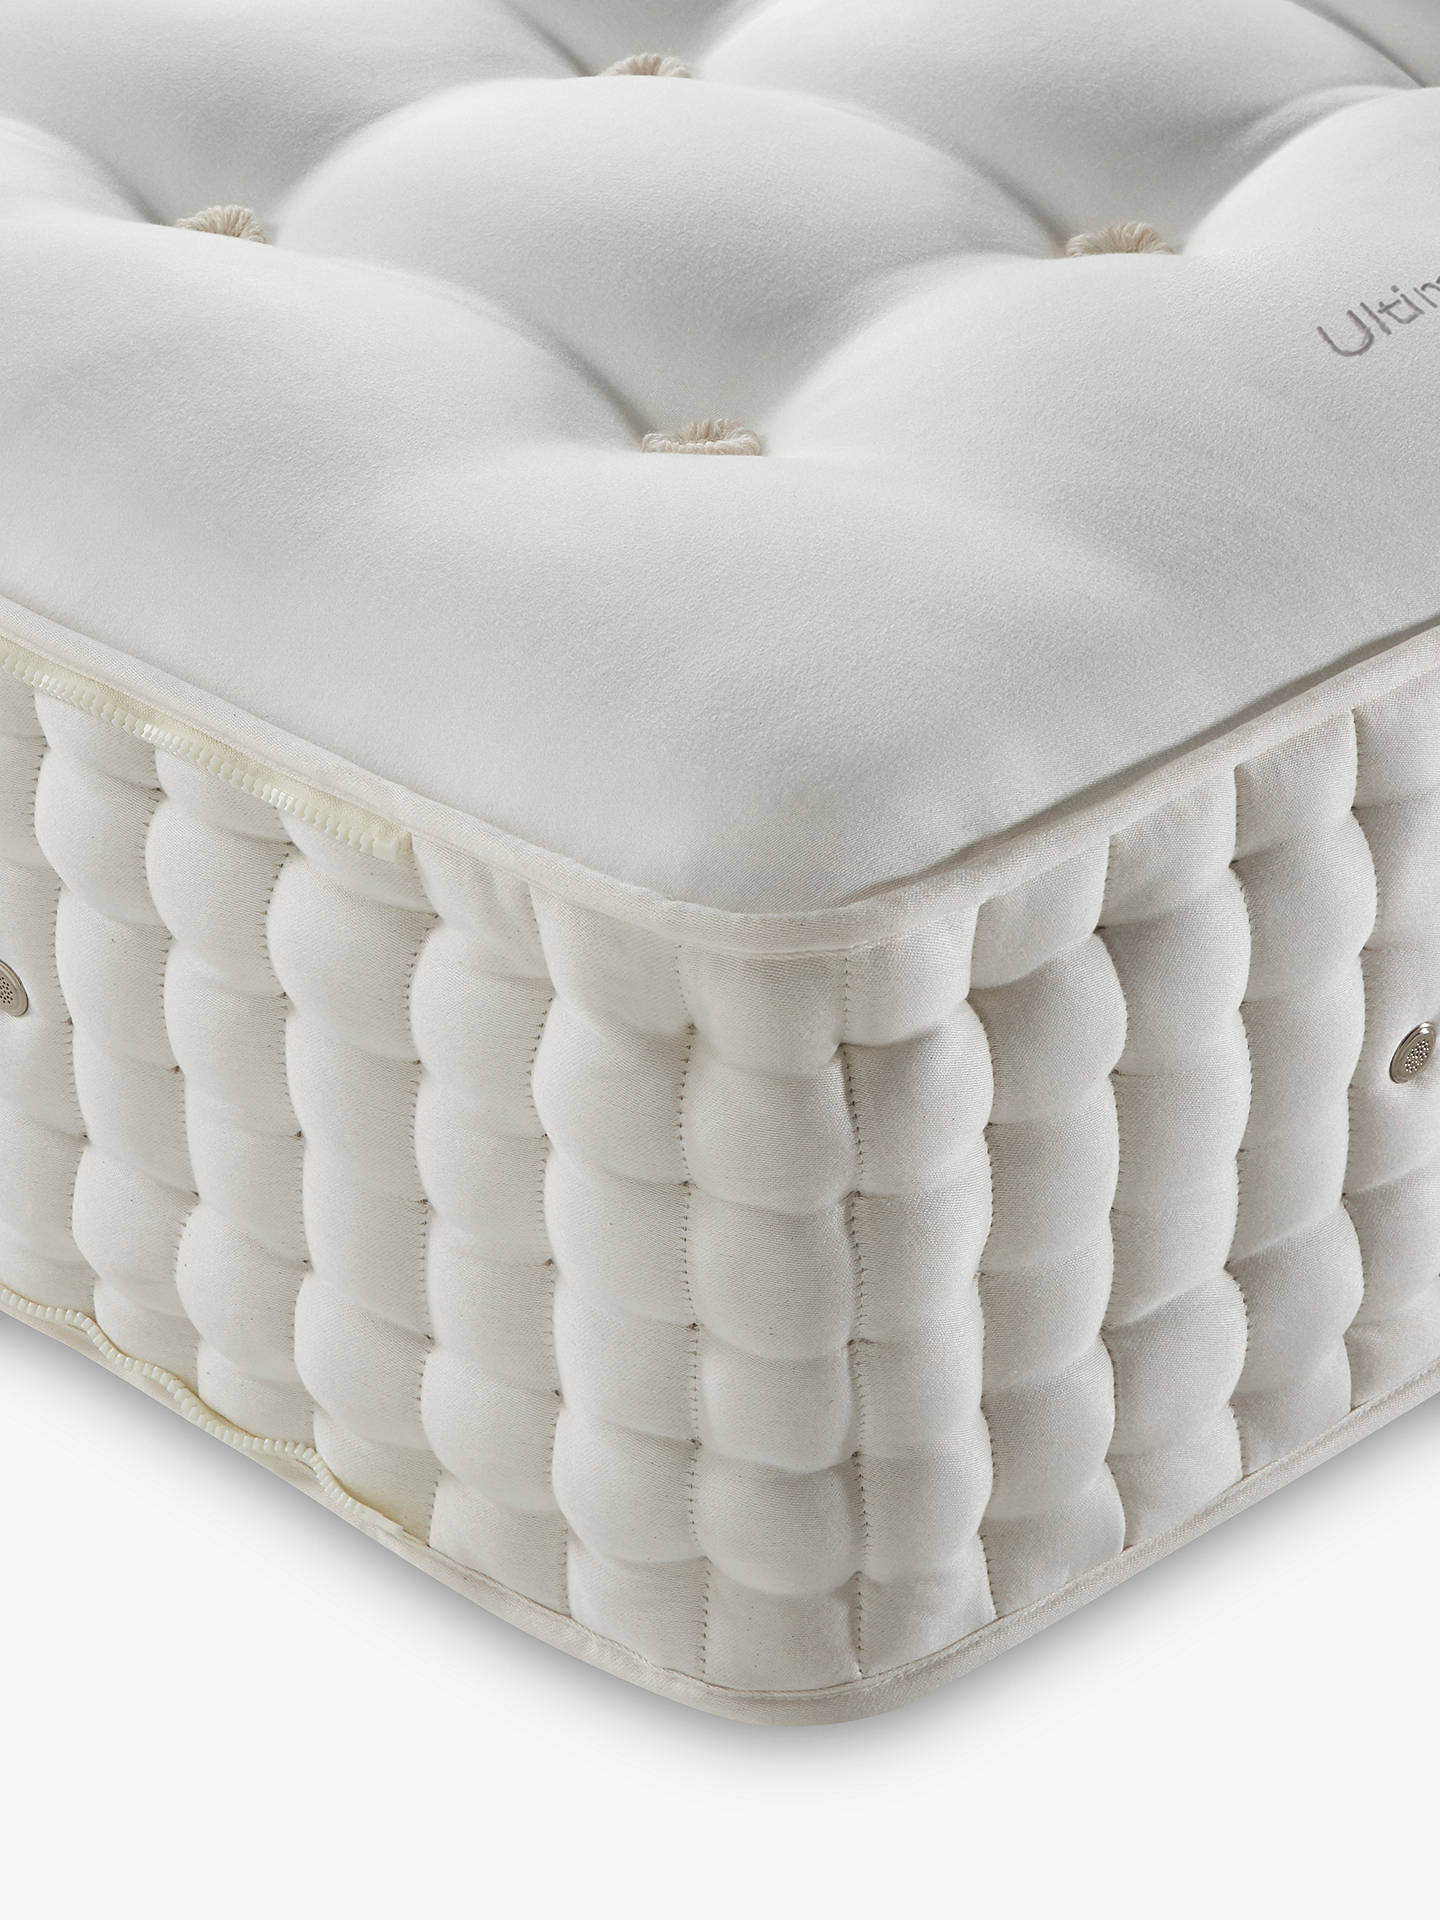 Buy John Lewis & Partners The Ultimate Collection Silk Pocket Spring Zip Link Mattress, Medium, King Size Online at johnlewis.com